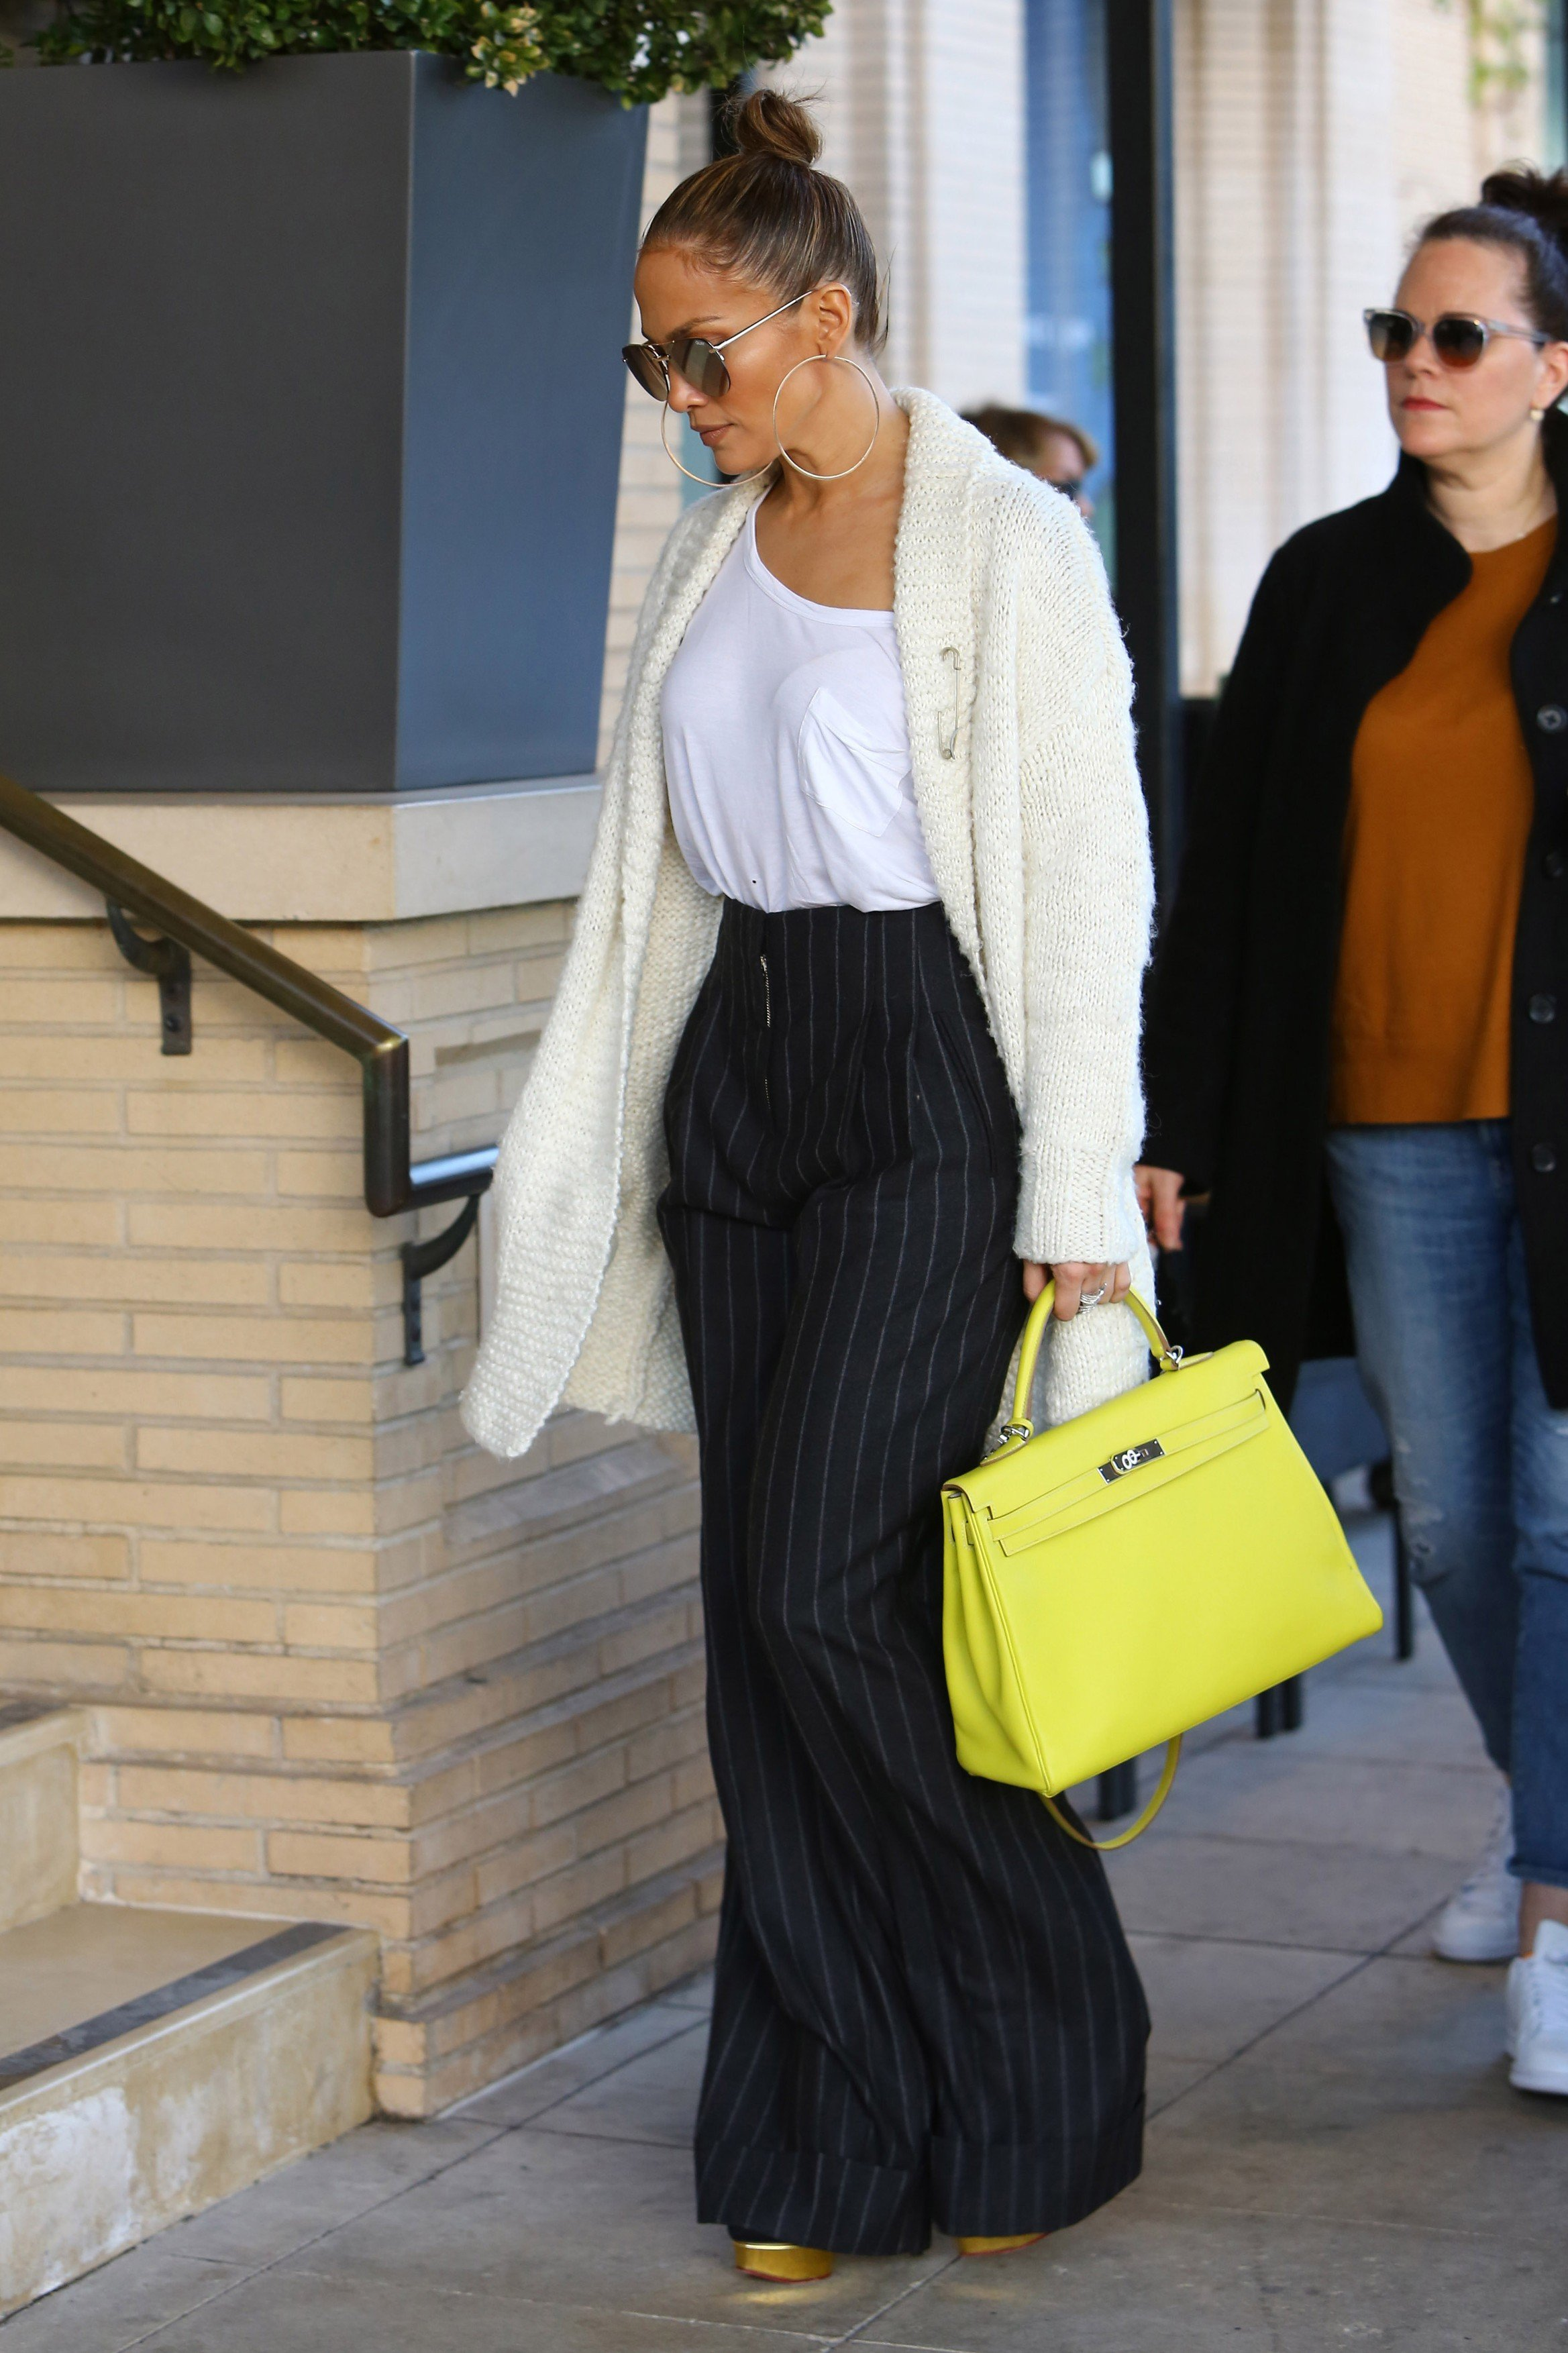 Beverly Hills, CA - Jennifer Lopez steps out with her girlfriends and does a little shopping at luxury jewelry store XIV Karats and later Barneys New York. The mother of two just posted a cryptic photo of Drake and herself cuddling last night, causing a slew internet chatter on their relationship status. Despite JLo claiming the two are just friends and working on music, she sure know how to build up the buzz.      December 28, 2016, Image: 309621225, License: Rights-managed, Restrictions: , Model Release: no, Credit line: Profimedia, AKM-GSI